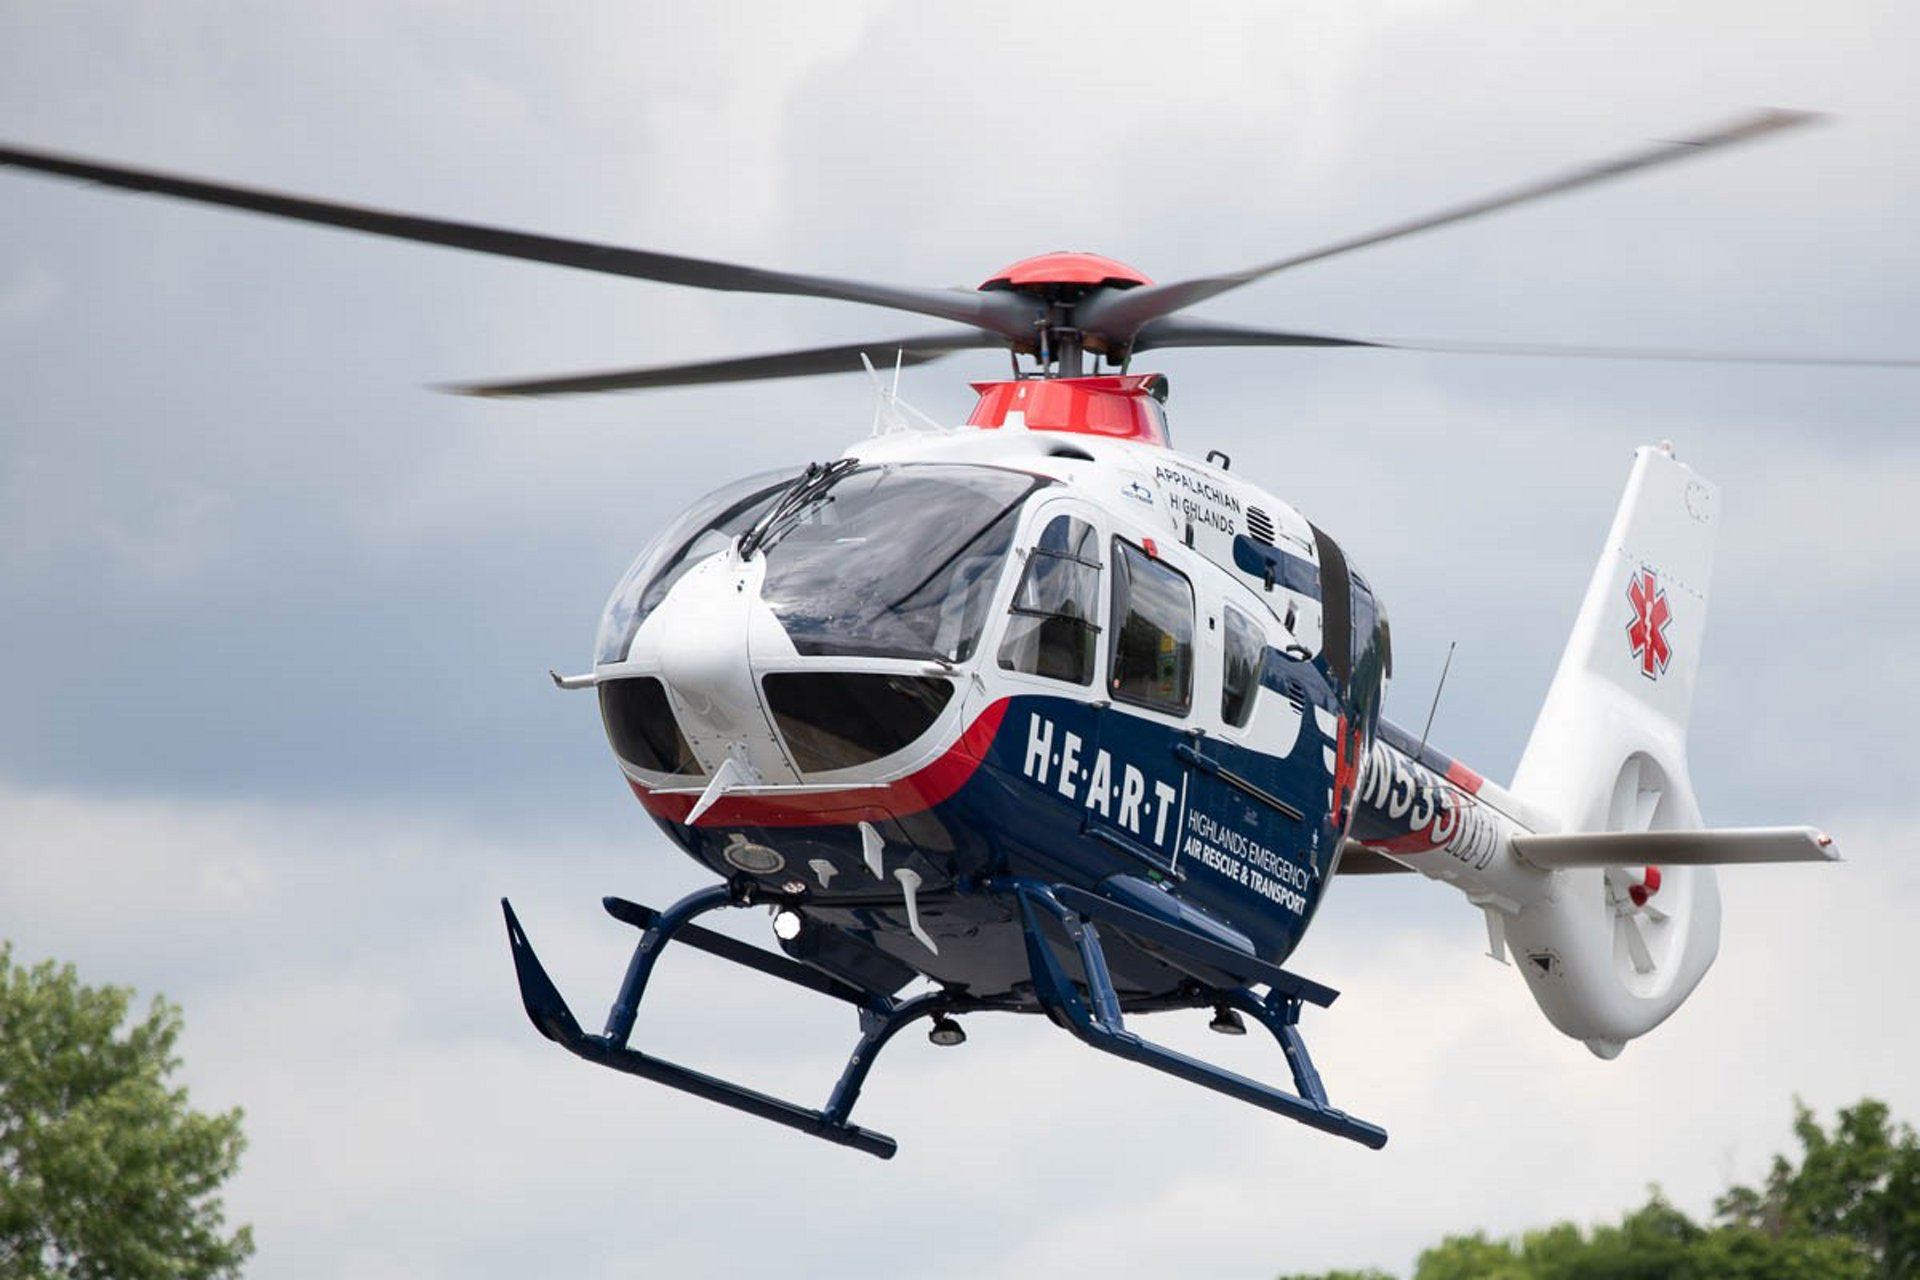 Global Medical Response (GMR) will add a total of 21 Airbus helicopters from the H125, H130 and H135 families to its growing air medical fleet, with options to include up to an additional 23 helicopters, bringing the total order potential up to 44 helicopters.